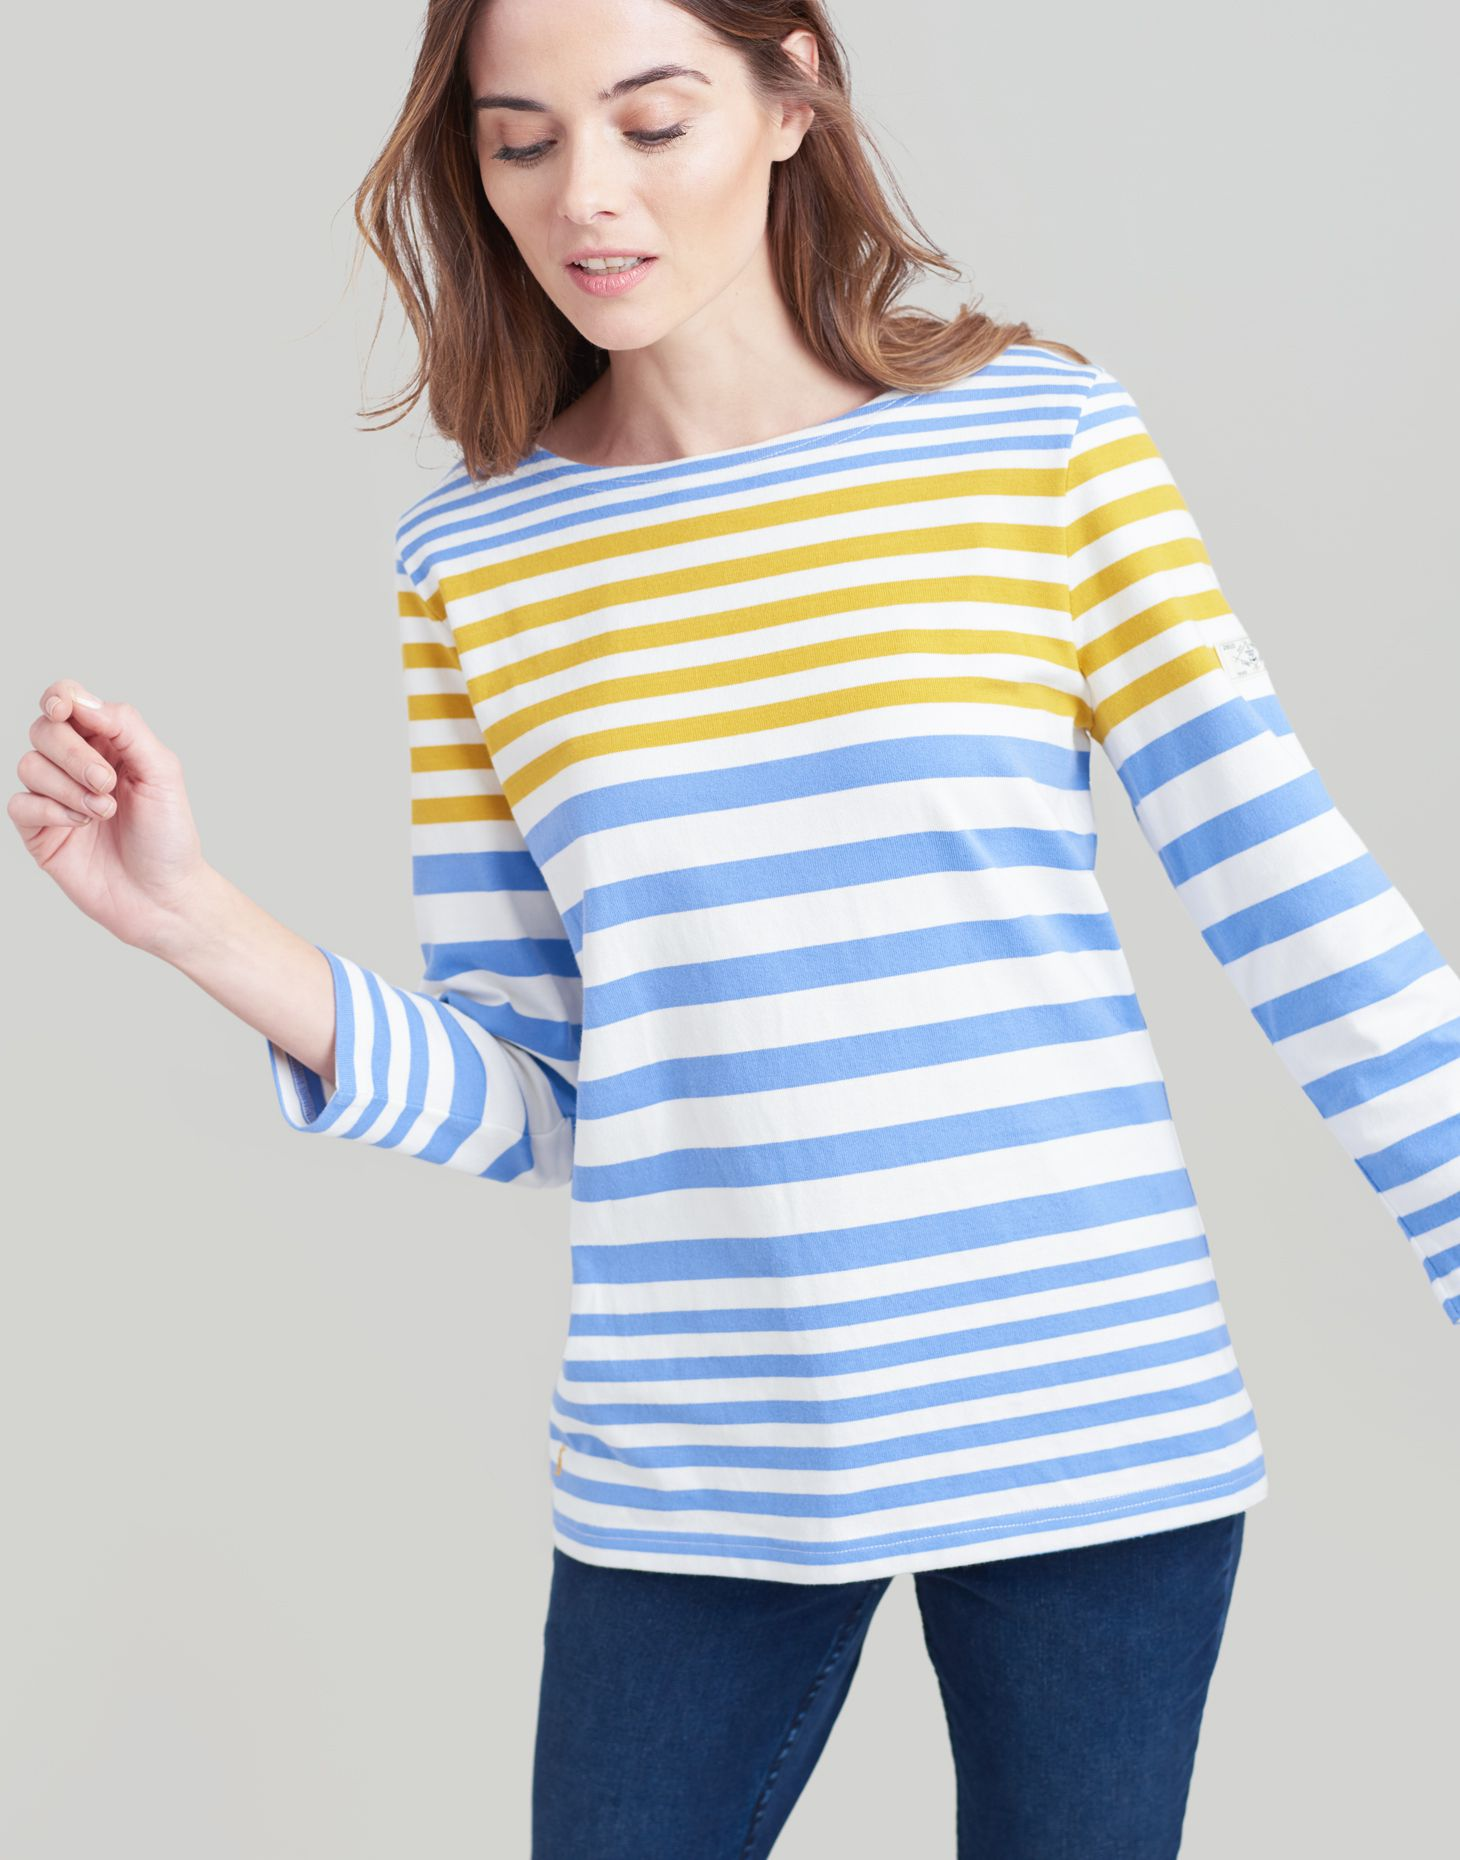 95bc60741 Harbour BLUE GOLD STRIPE Jersey Top   Joules UK